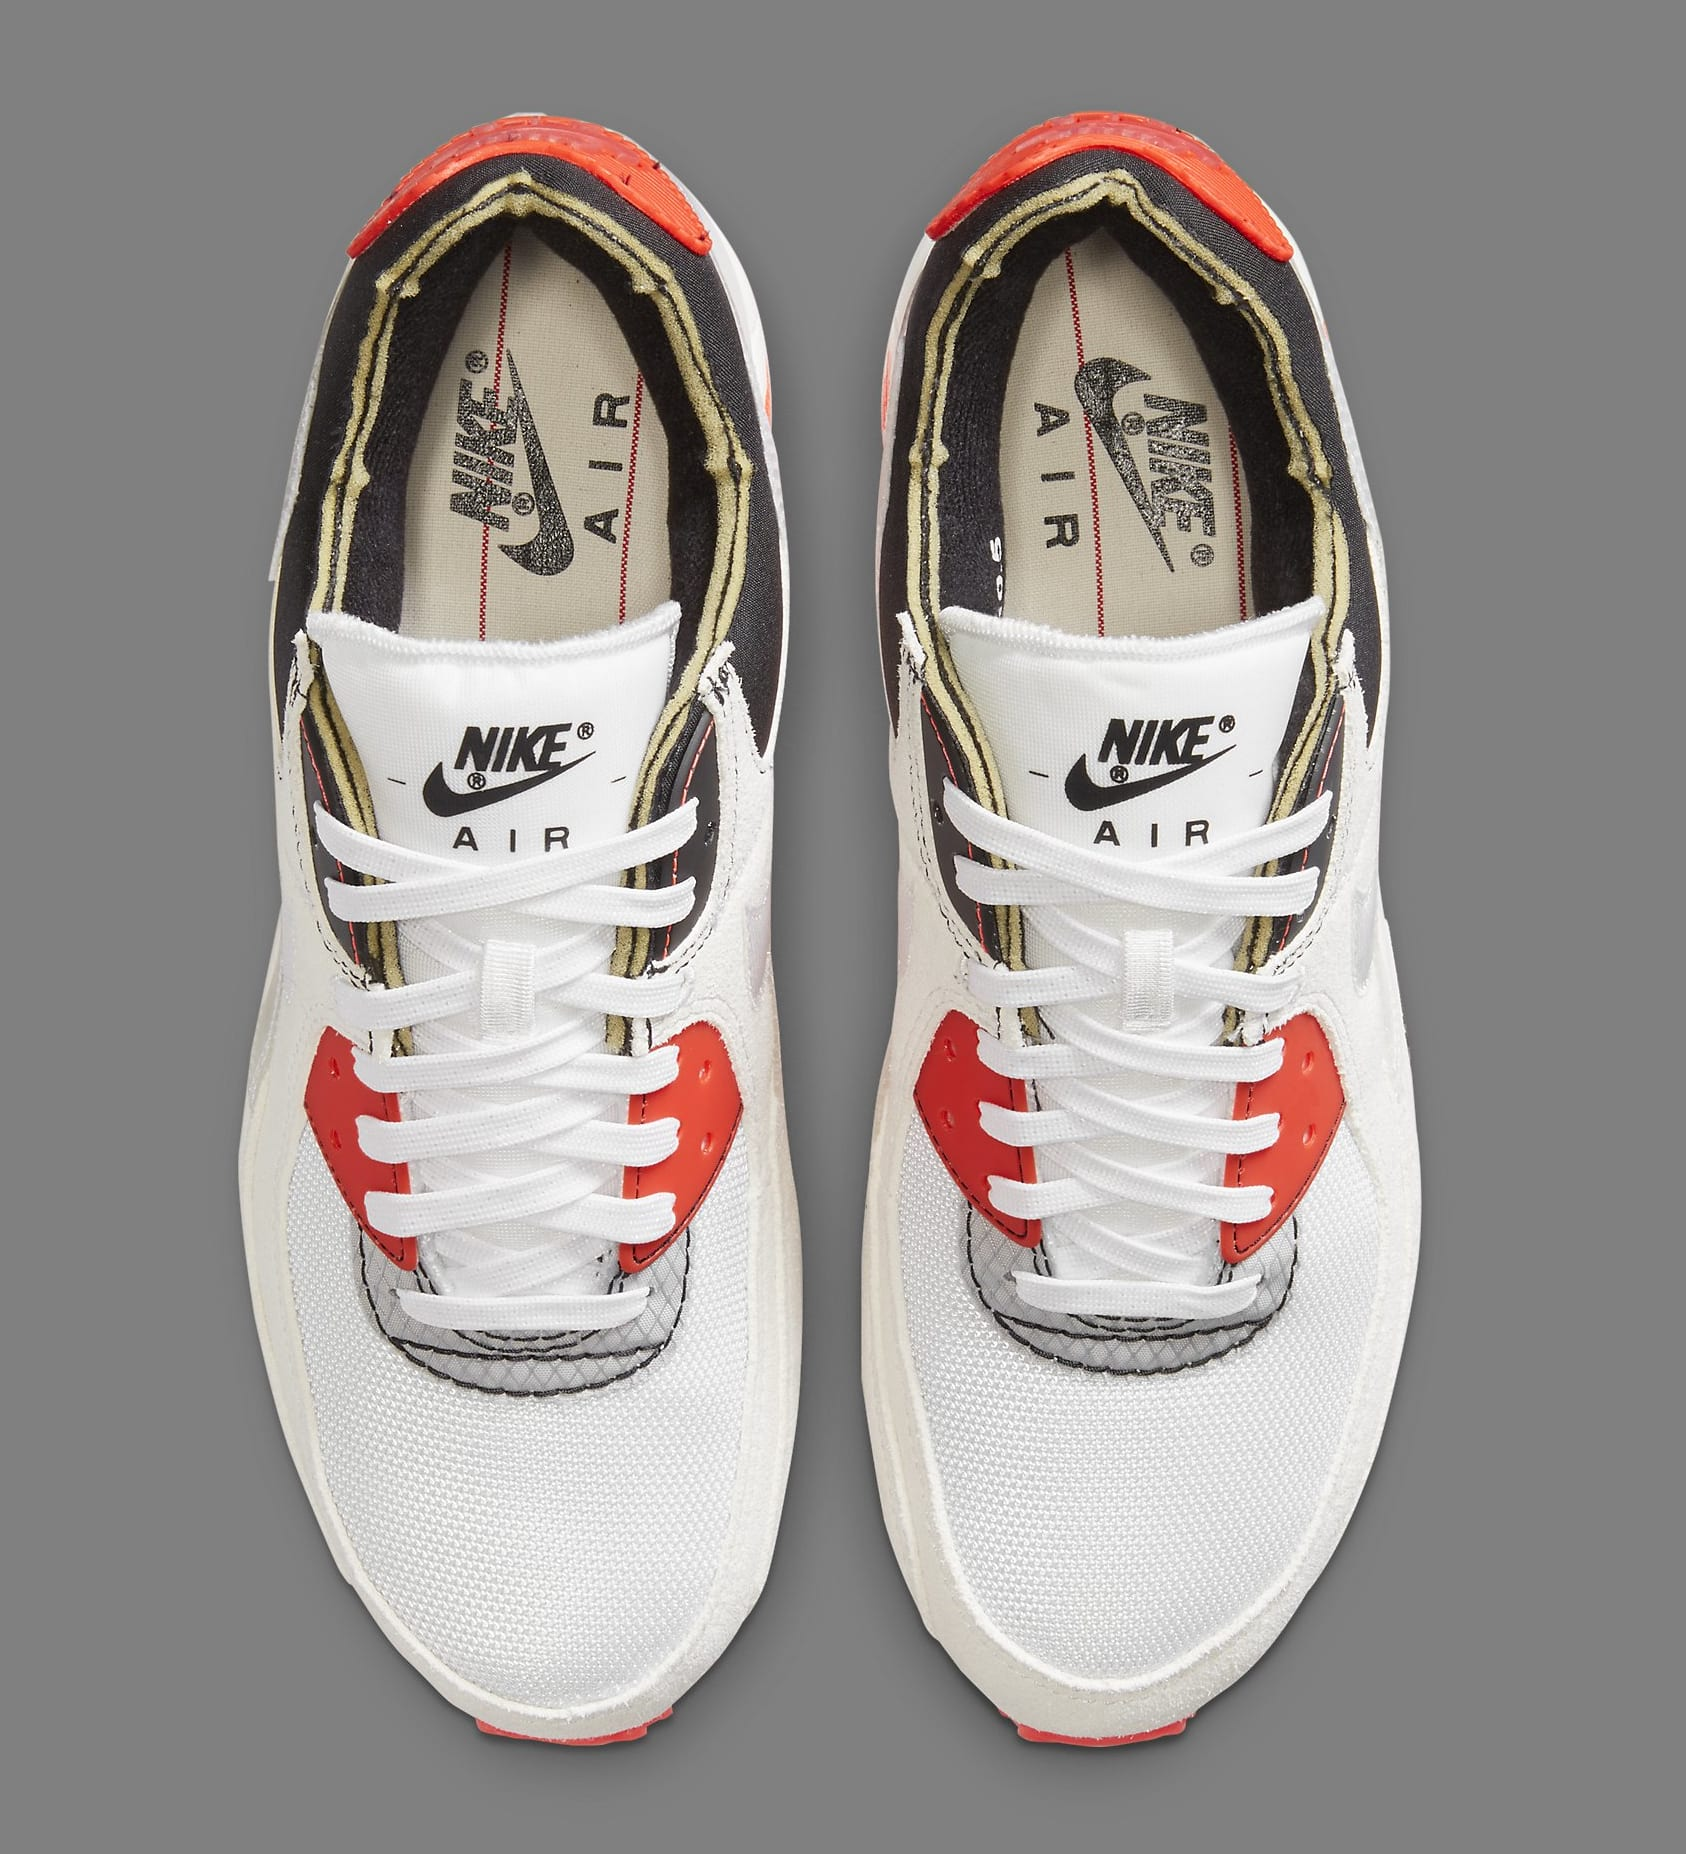 Nike Air Max 90 'Archetype' DC7856-100 Top